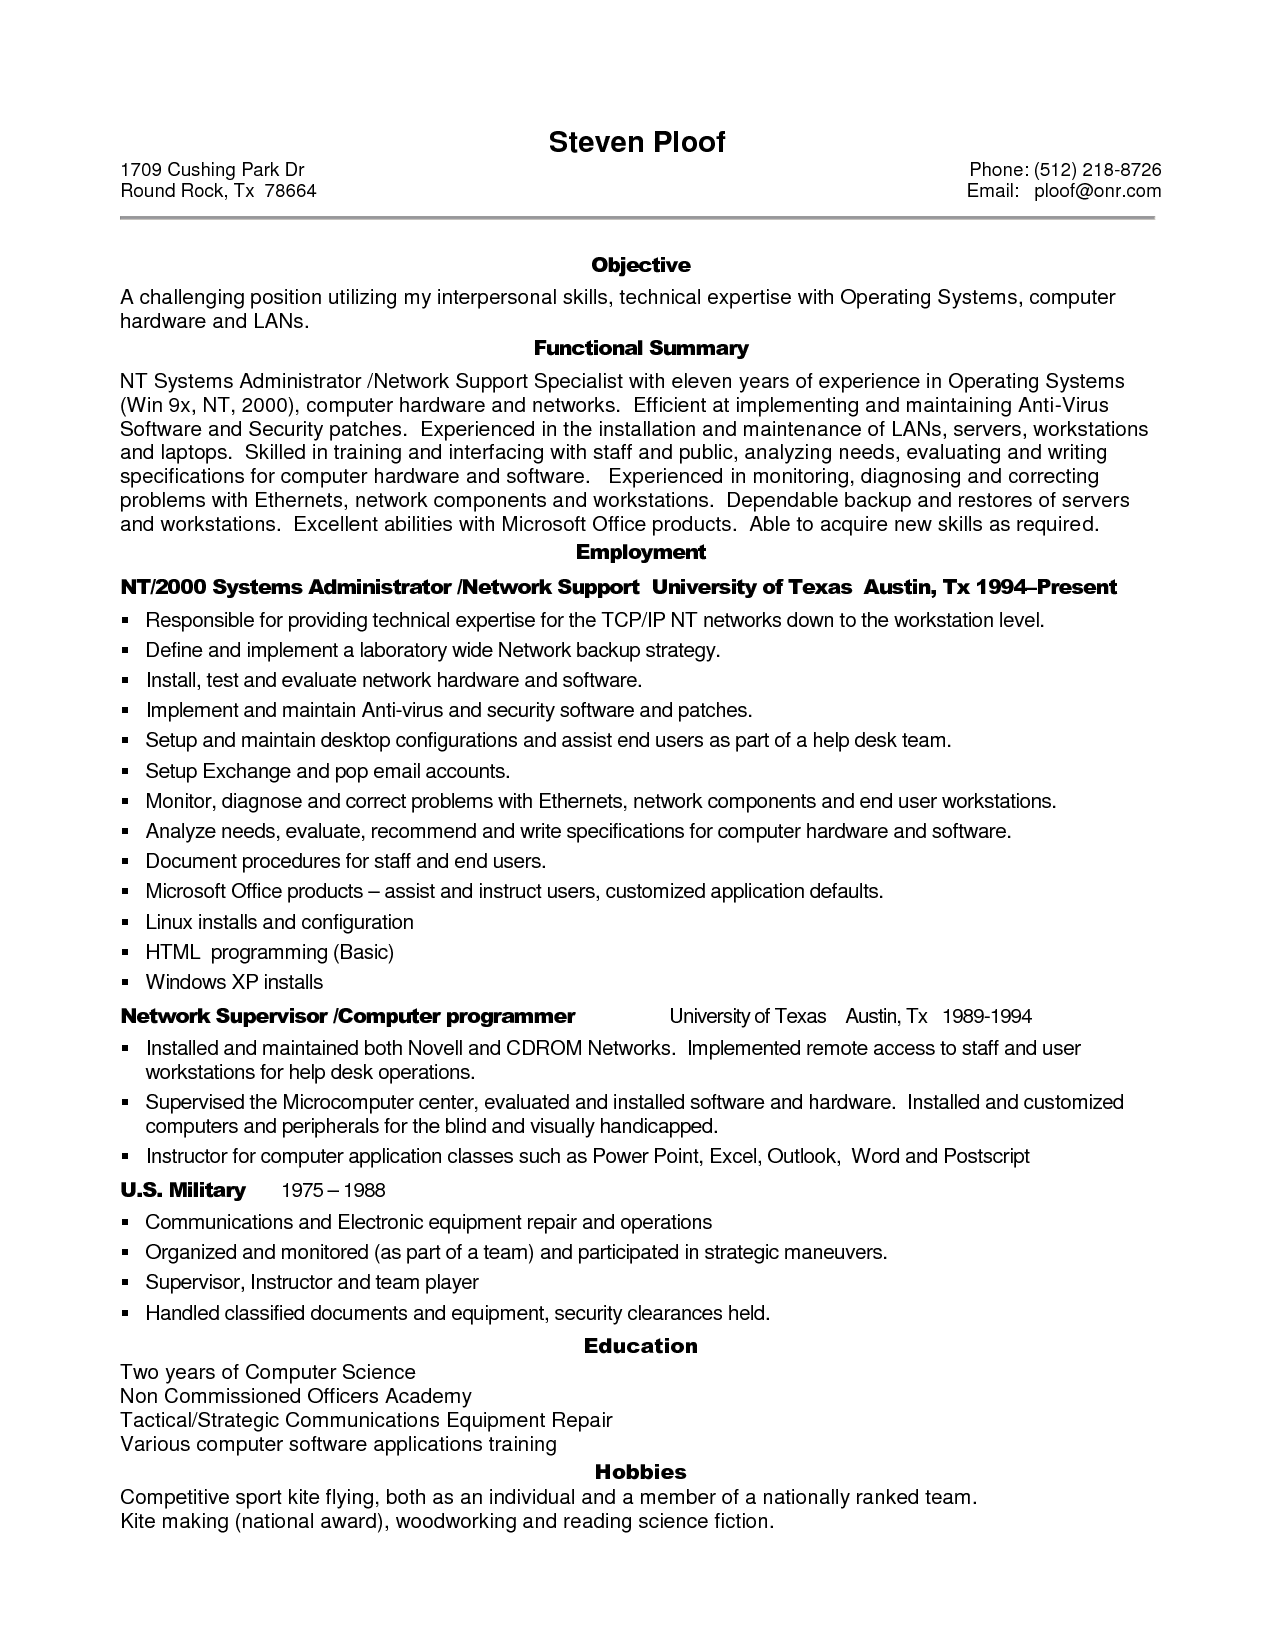 Basic Resume Outline Template Sample Resume For Experienced It Professional Sample Resume For